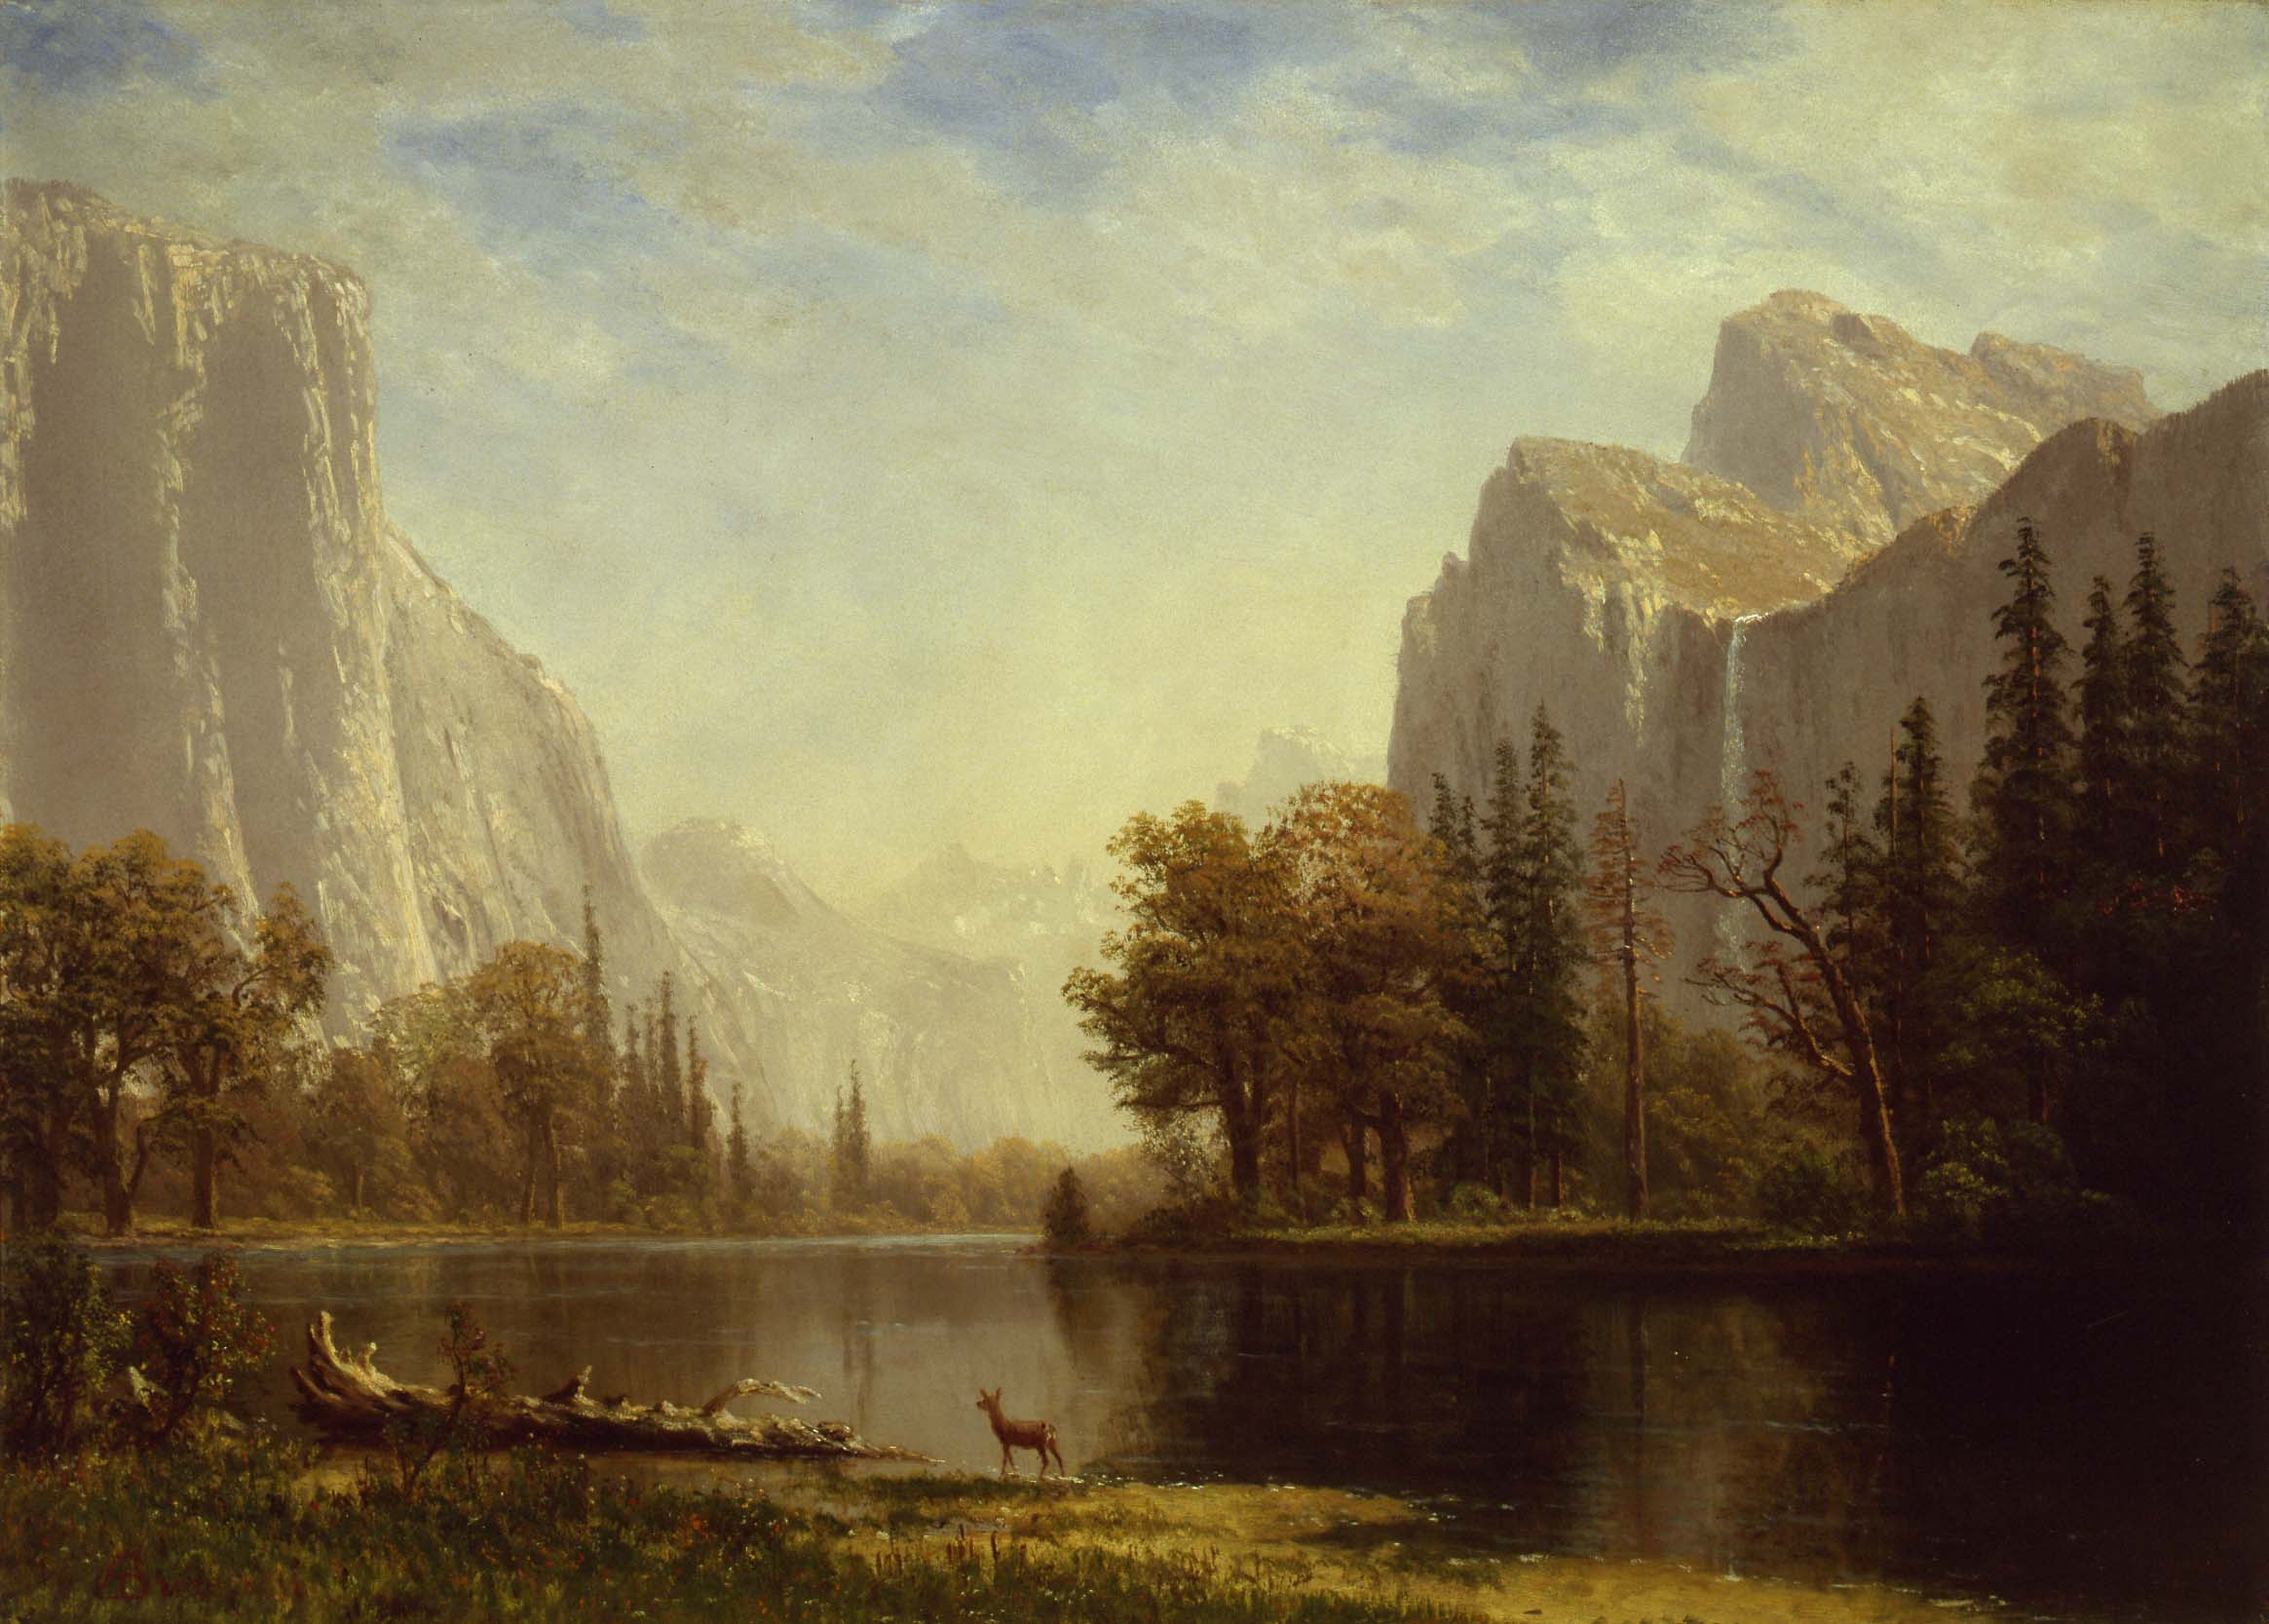 """Albert Bierstadt (American, b. Germany, 1830-1902) """"Yosemite Valley,"""" ca. 1865, oil on canvas, 21 3/4 x 30 in., The Hyde Collection, Glens Falls, New York, 1976.1. Photograph: mclaughlinphoto.com"""